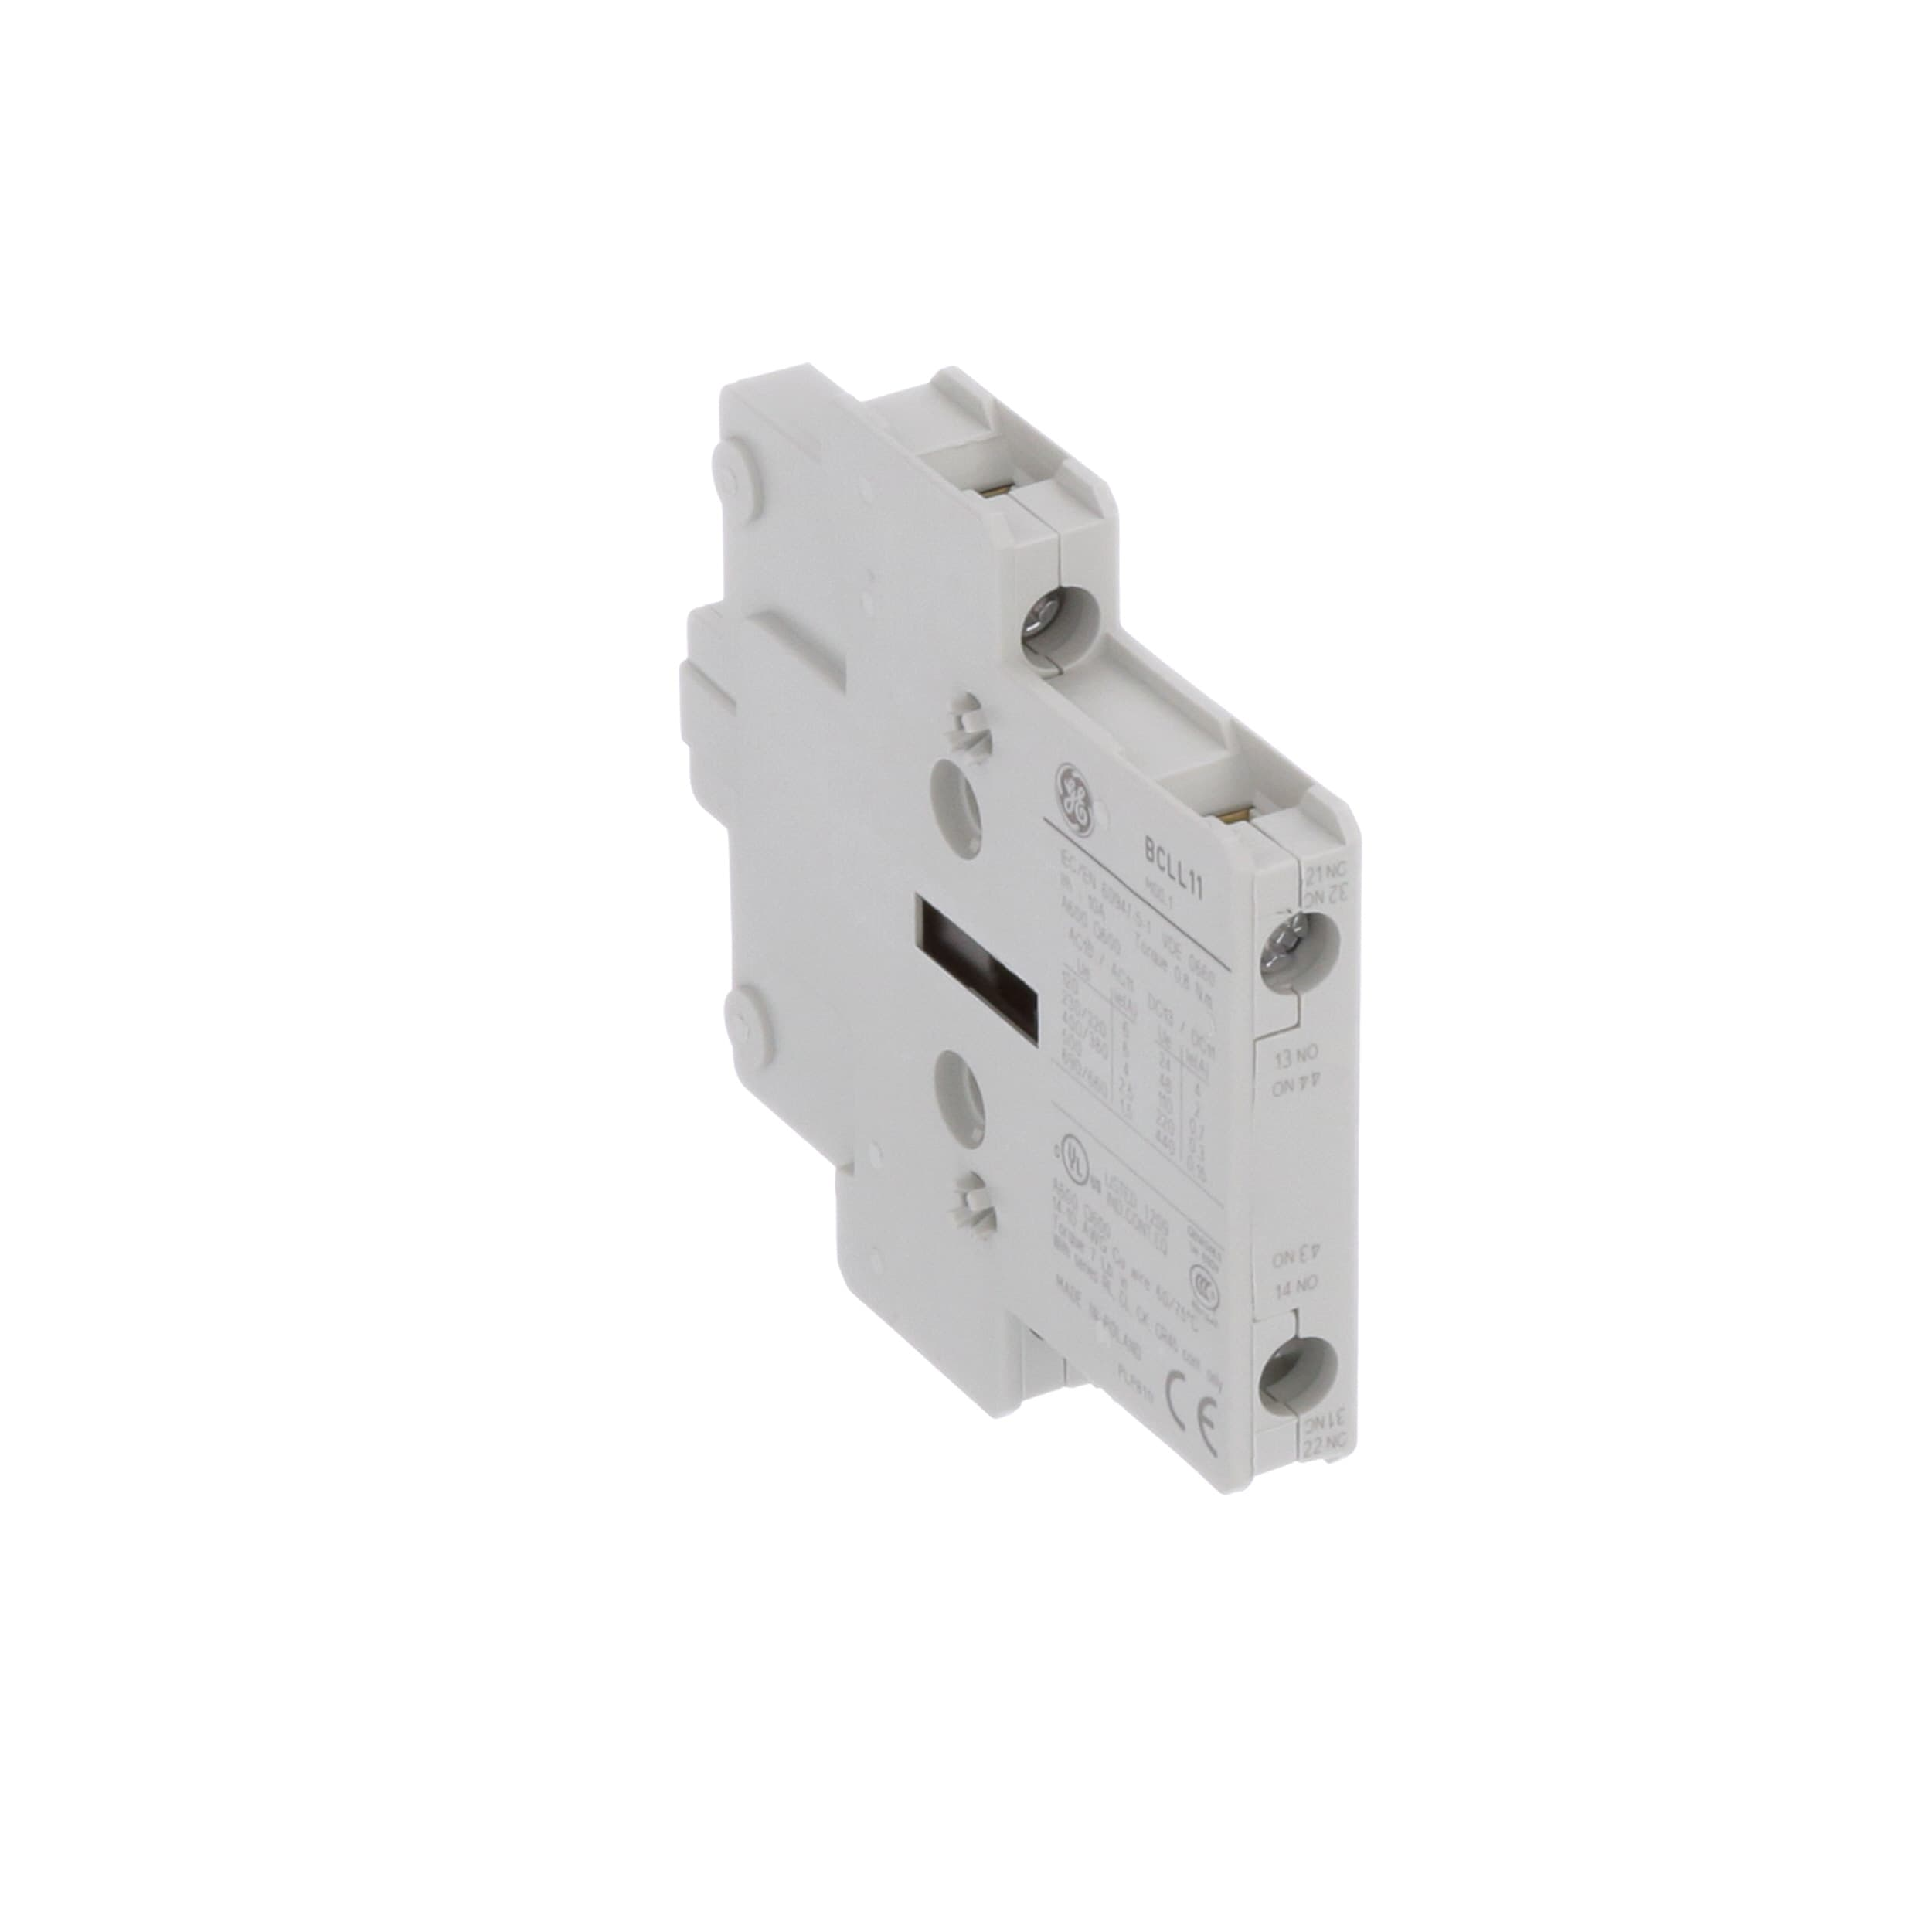 Ge Industrial Solutions Bcll11 Auxiliary Contact Block 600vac Wiring A 3 Pole Fan Isolator Switch Side Mount 1no 1nc Definite Purpose Contactor Allied Electronics Automation